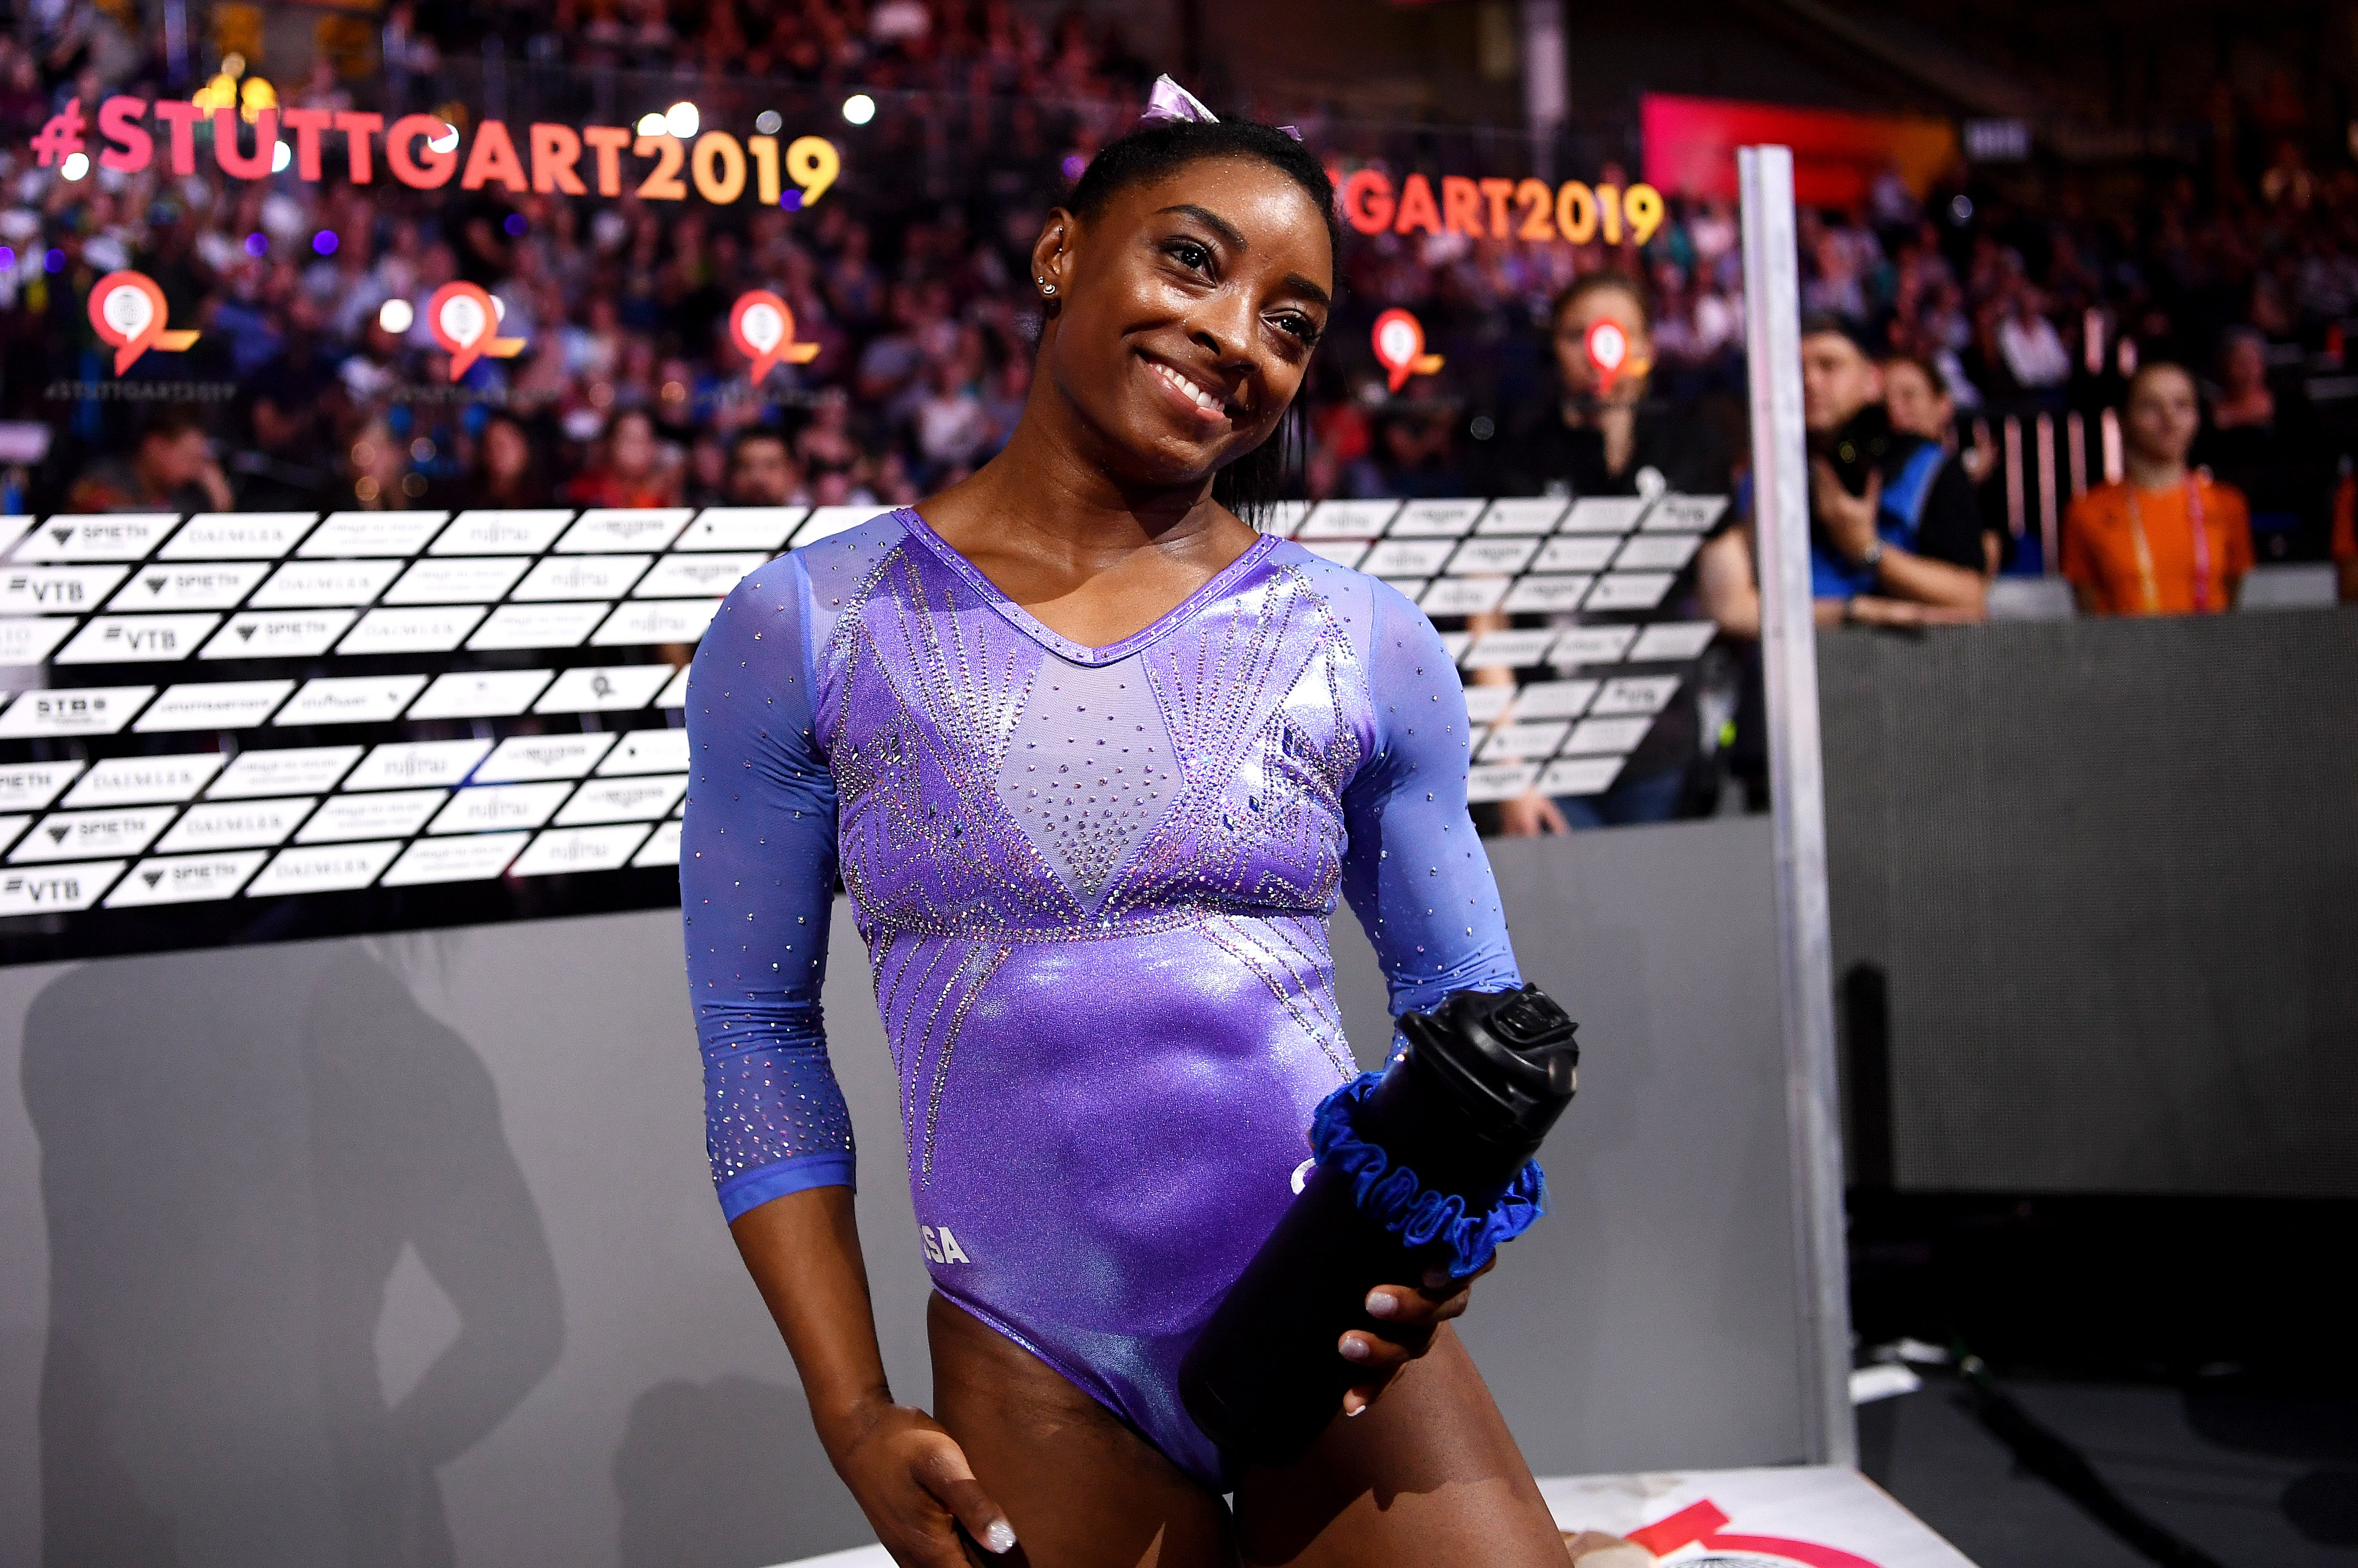 Simone Biles celebrates winning gold in the Women's Floor Final during day 10 of the 49th FIG Artistic Gymnastics World Championships on October 13, 2019 in Stuttgart, Germany. | Photo: Laurence Griffiths/Getty Images